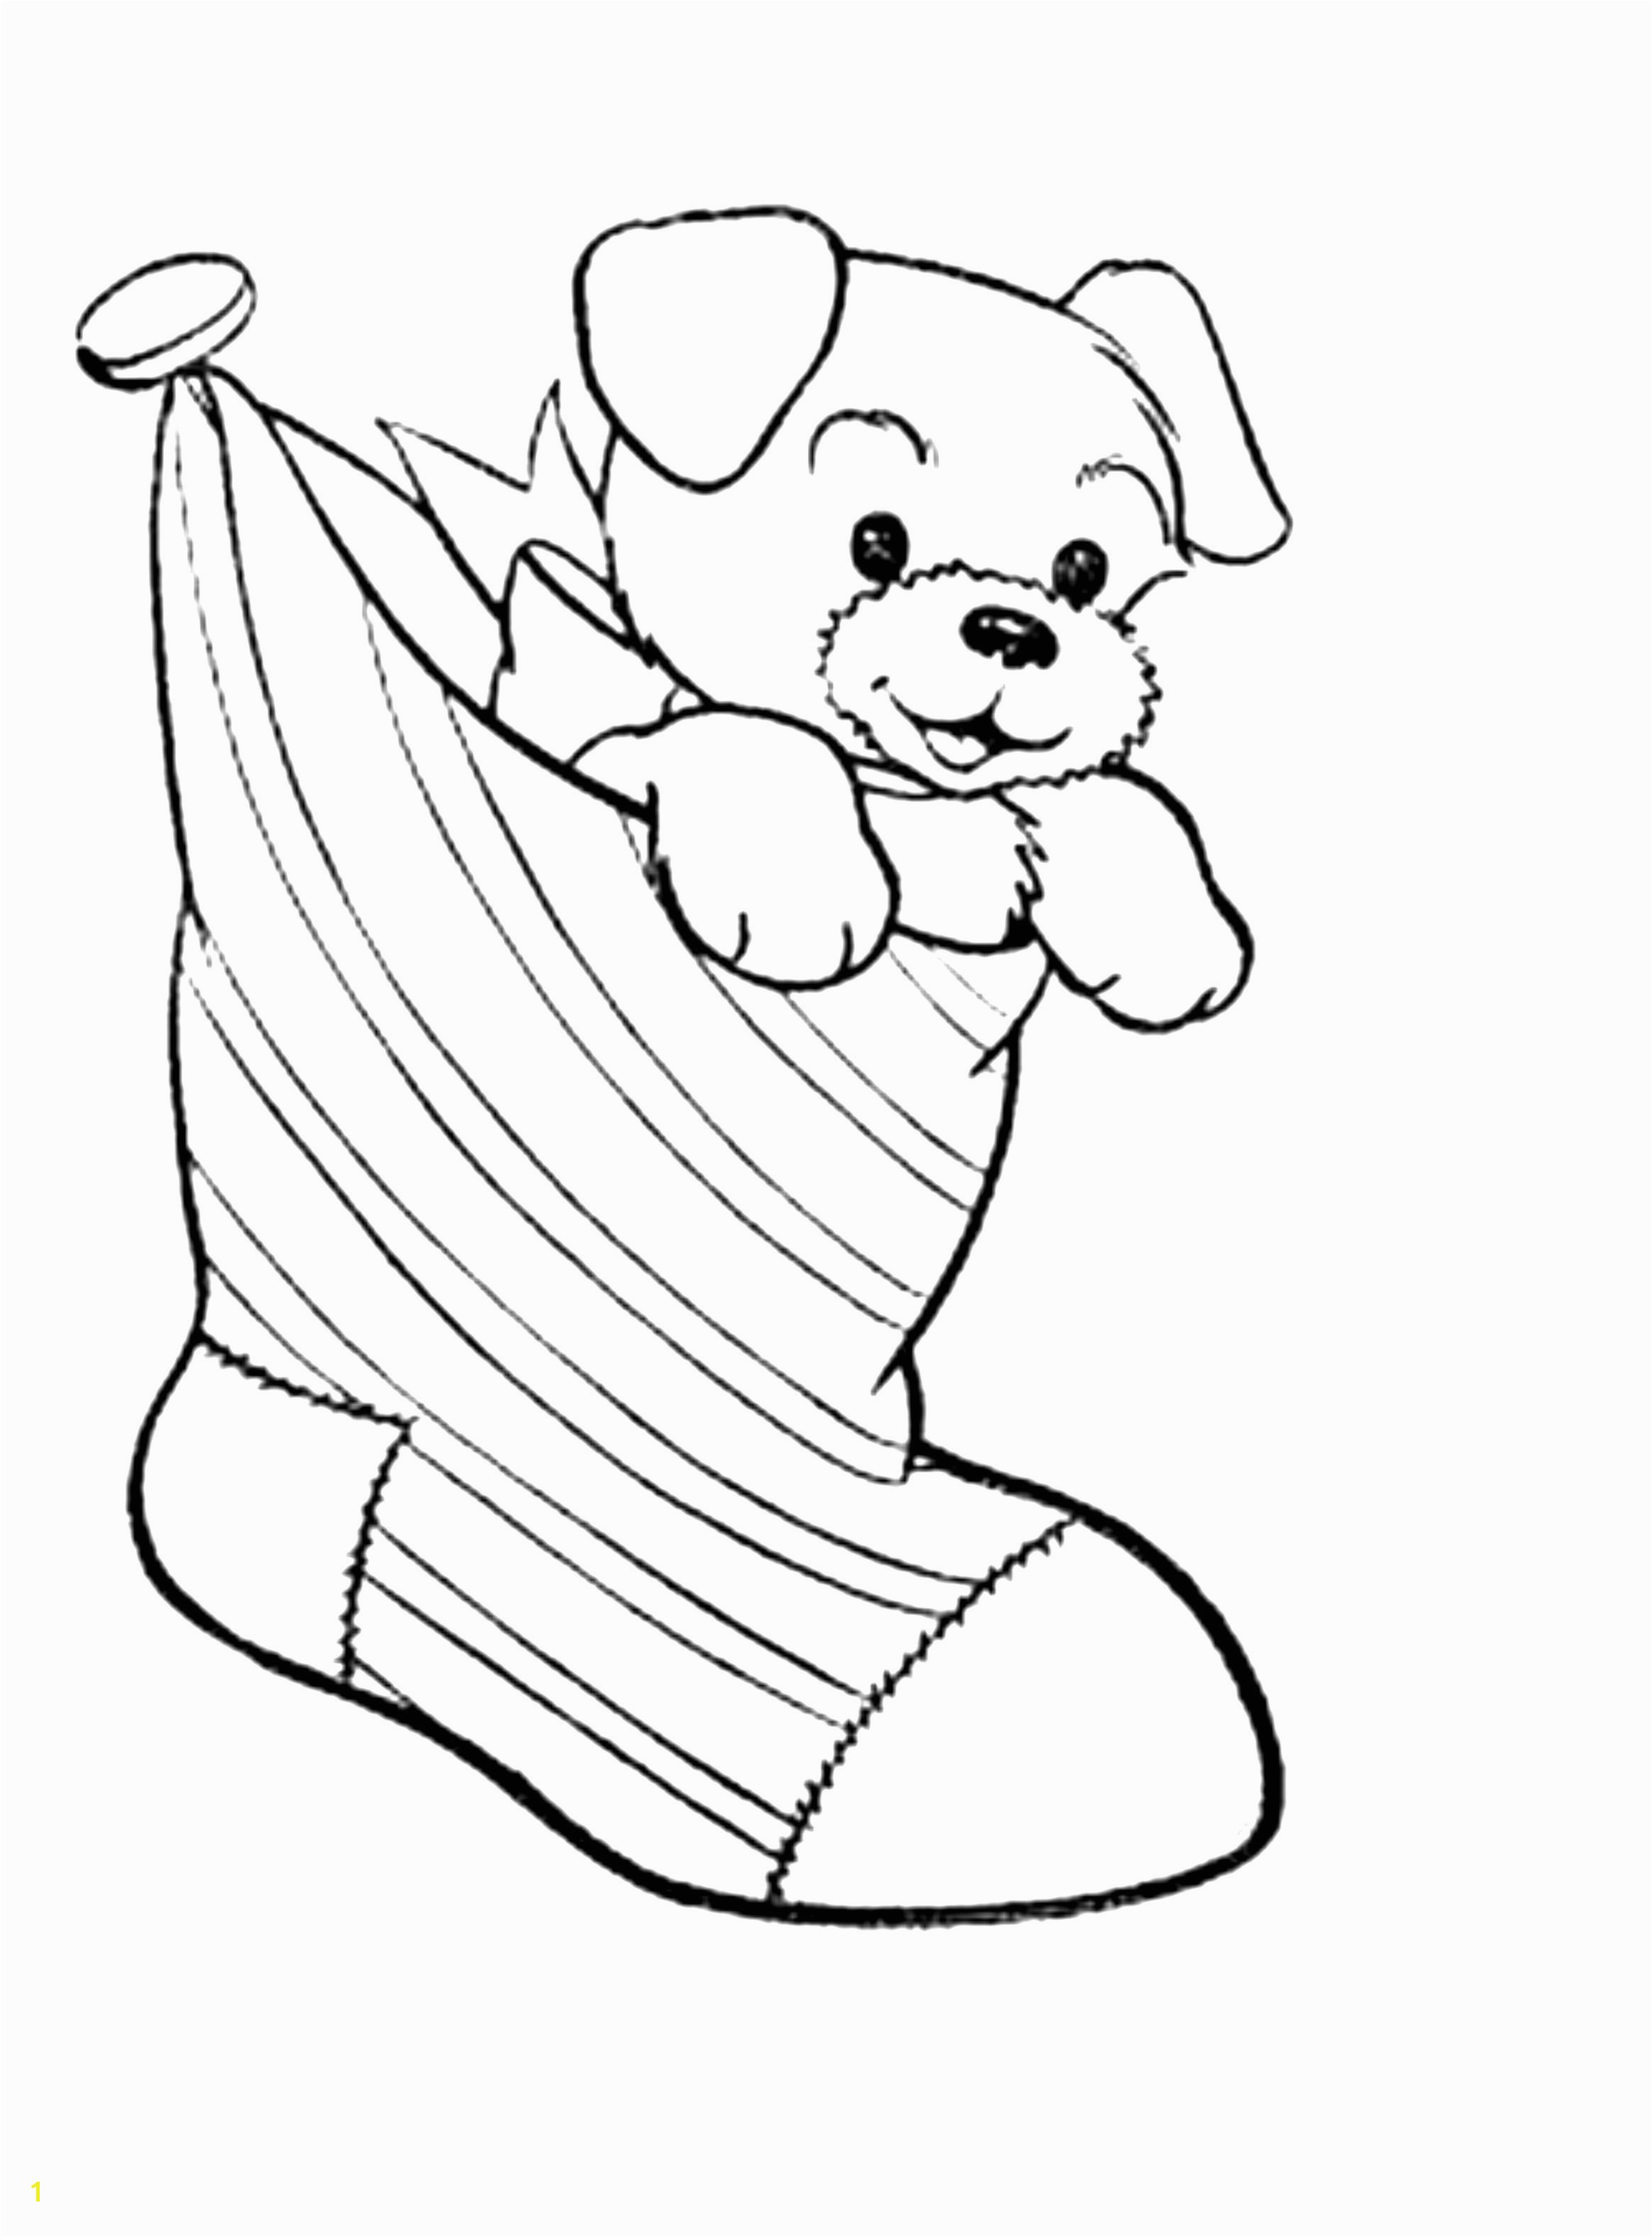 Baby Shower Coloring Pages Puppy Coloring Page Girl Coloring Fresh Baby Shower Coloring Pages